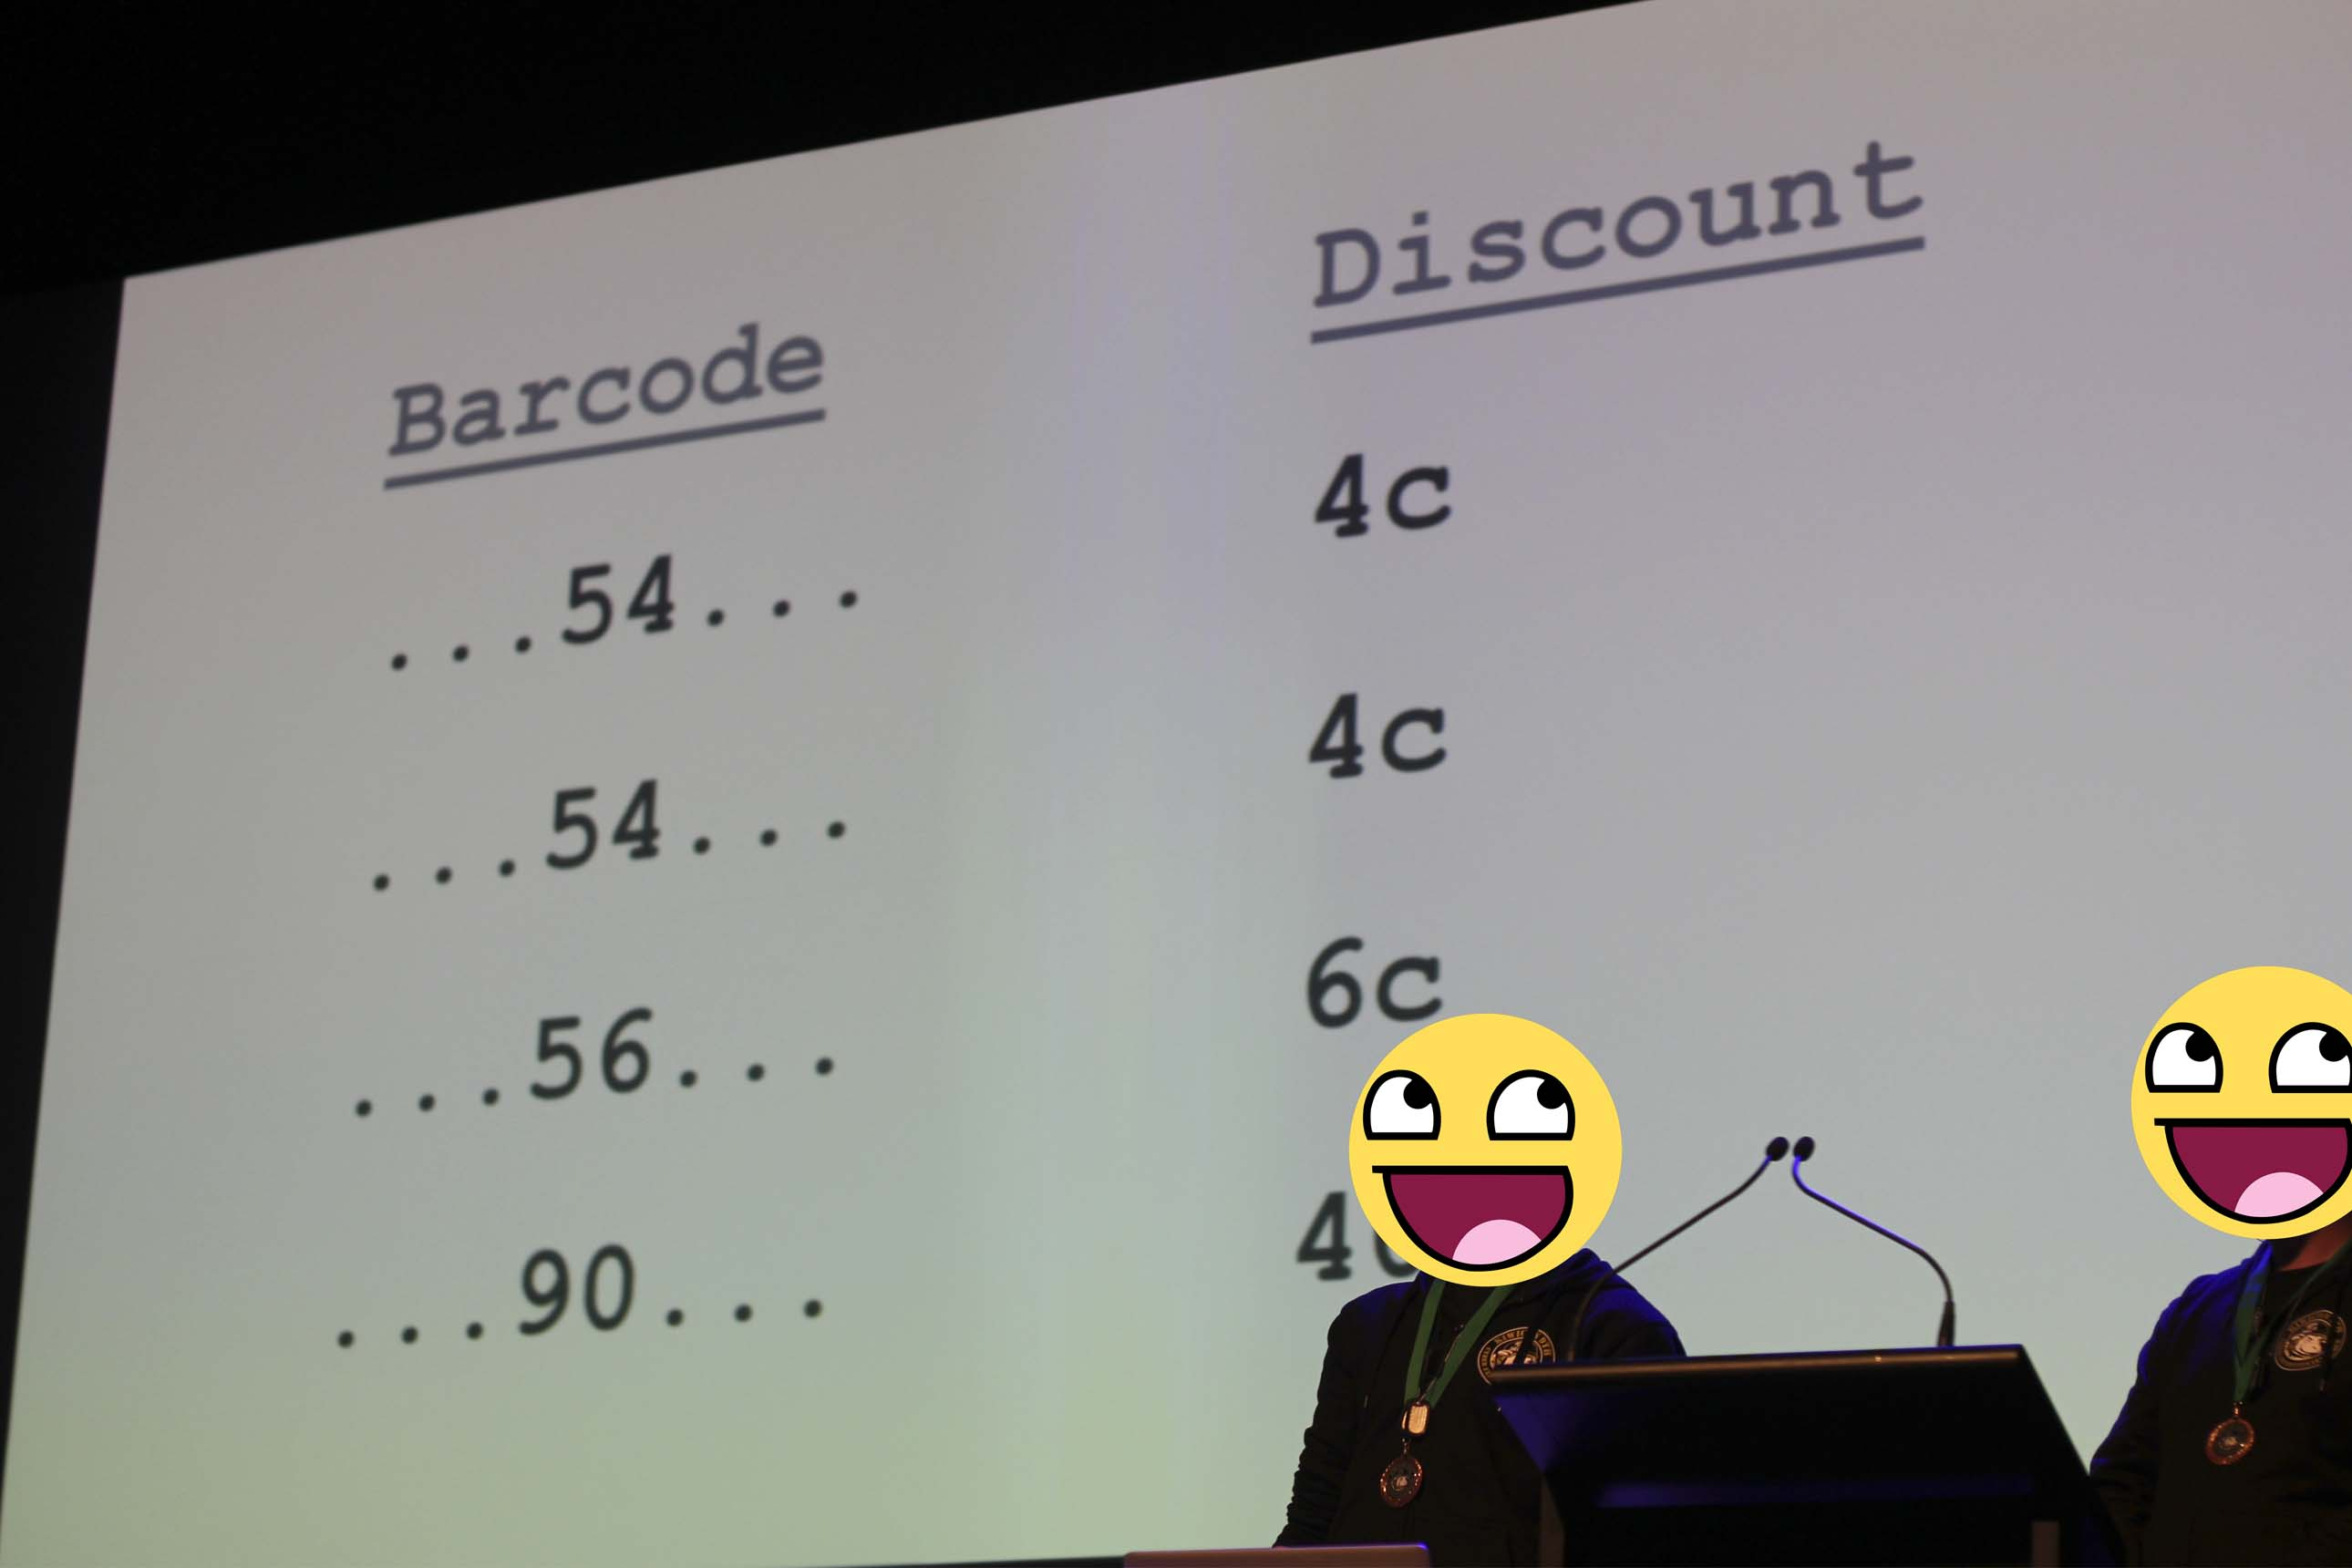 How the algorithm relates to discounts.